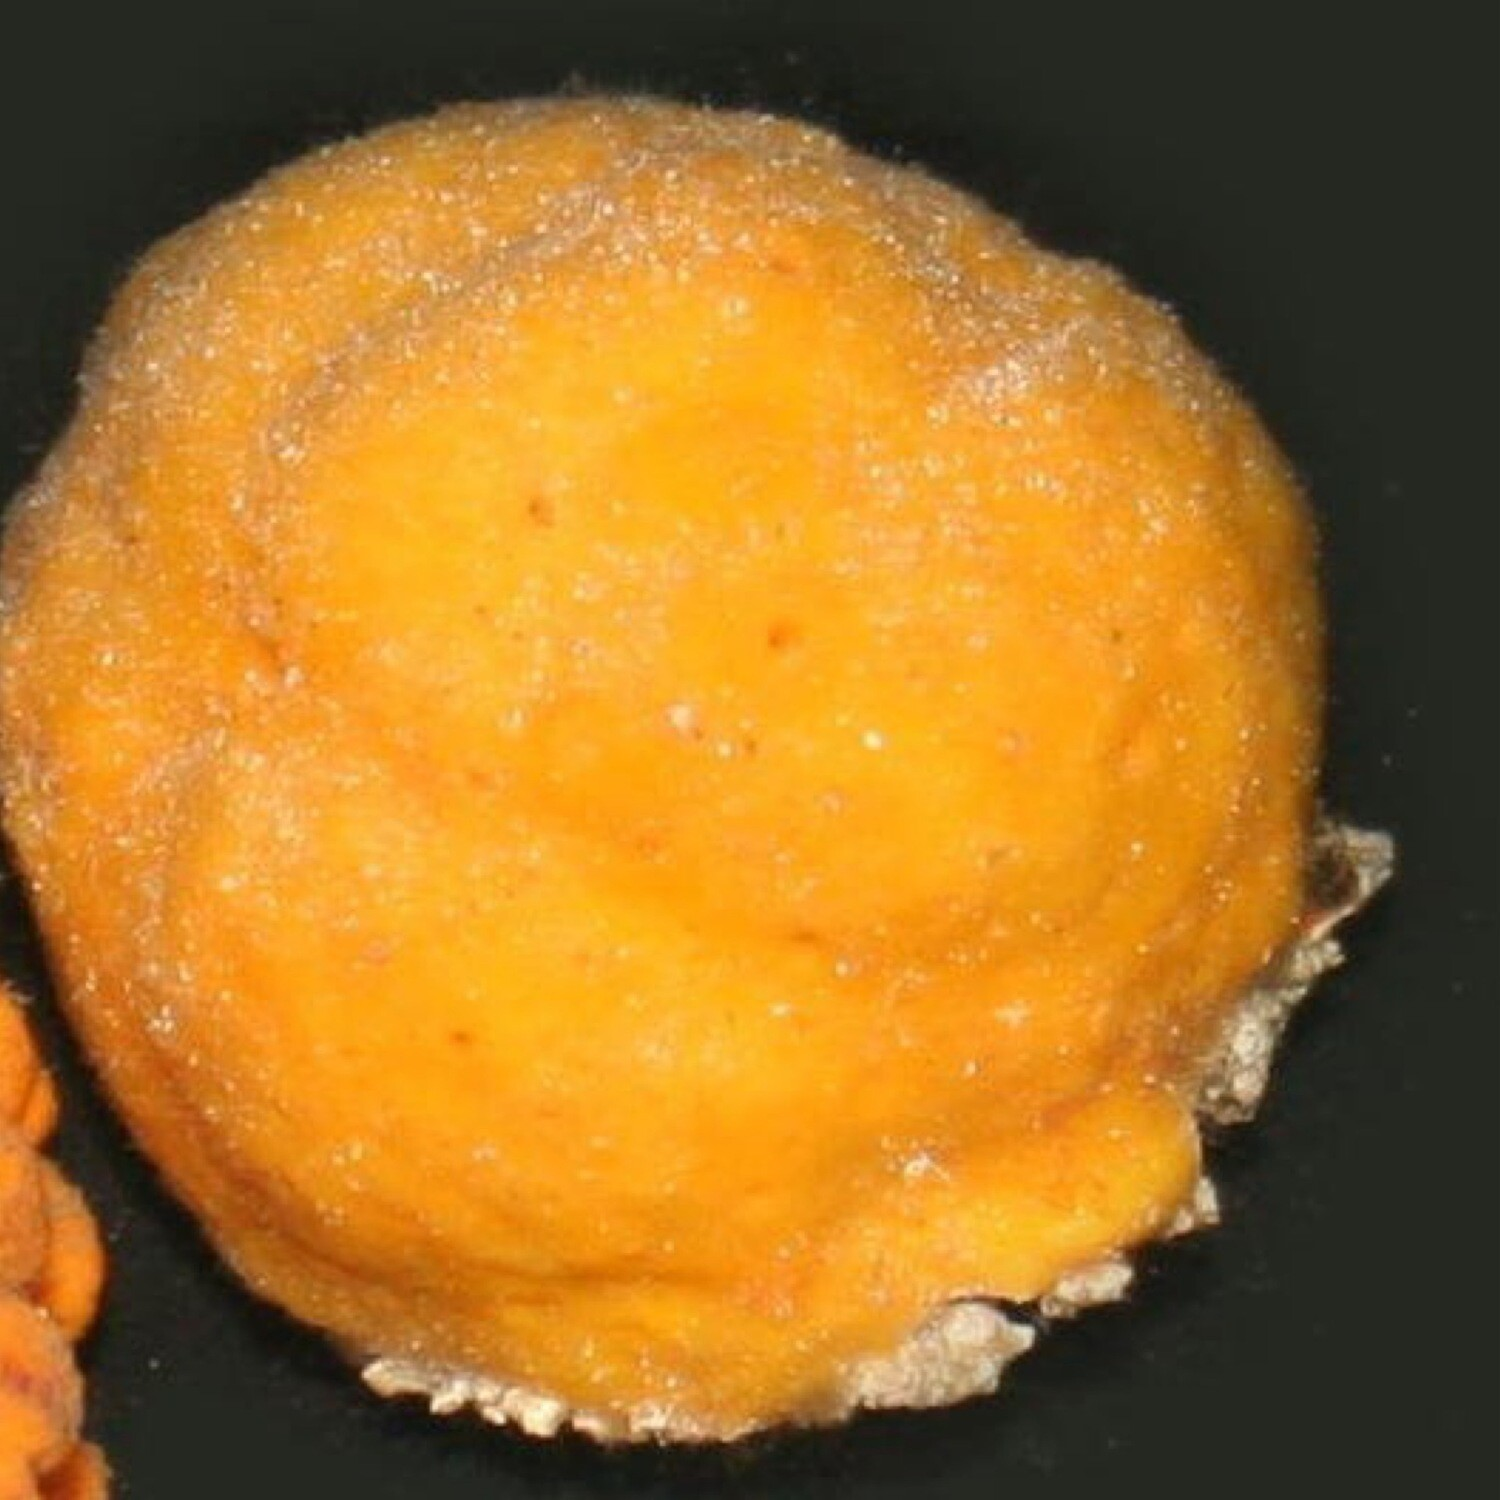 Orange/Yellow Ball Sponge